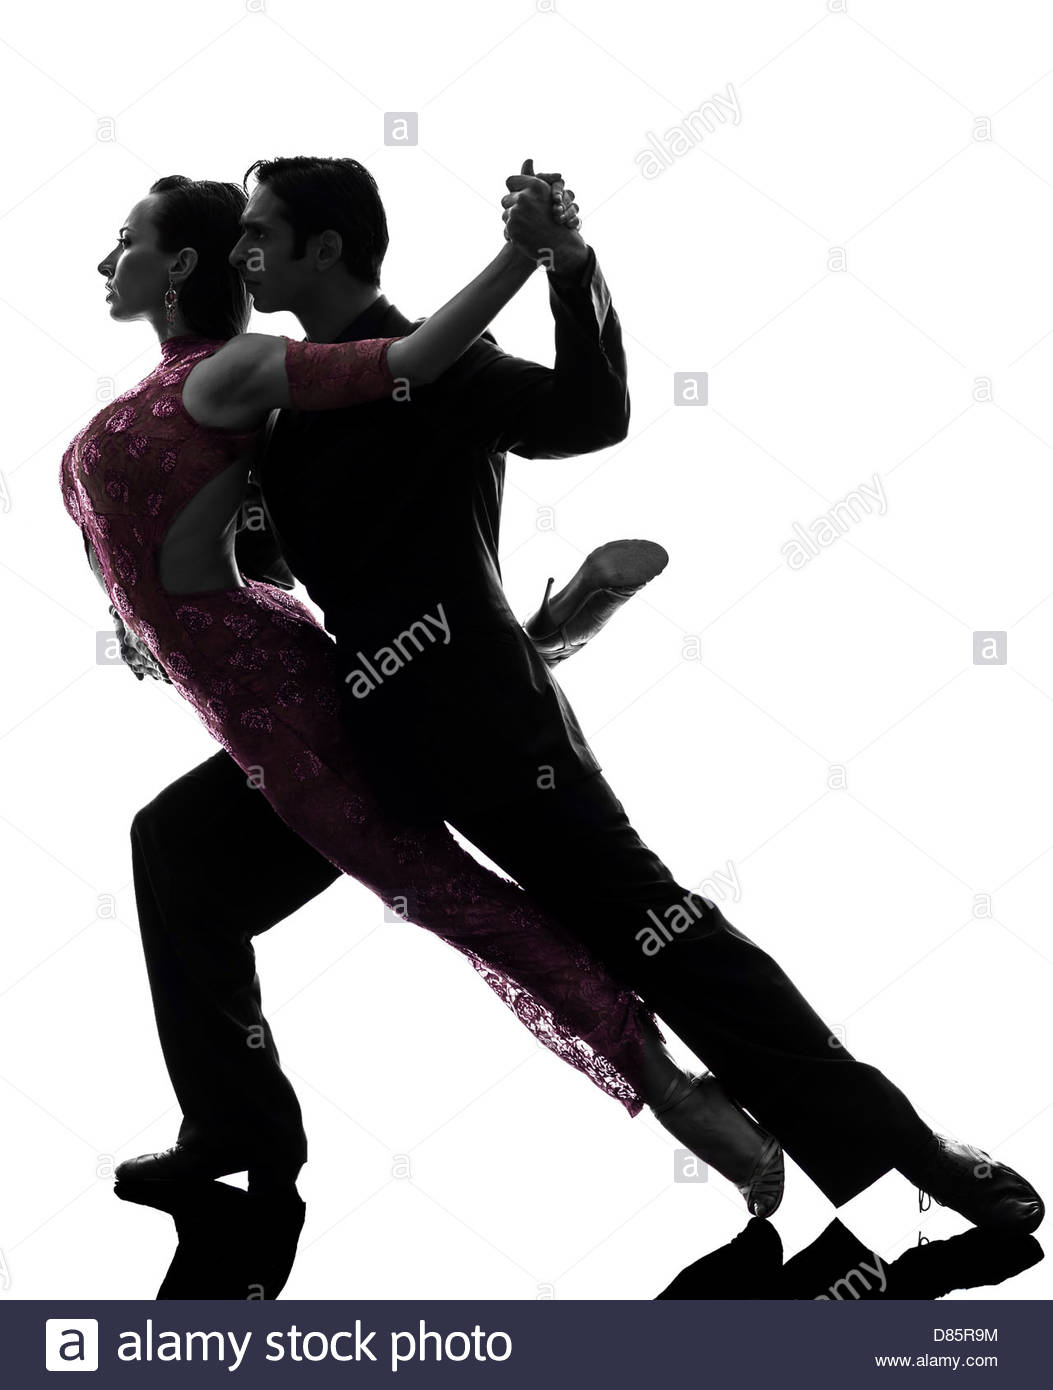 1053x1390 One Couple Man Woman Ballroom Dancers Tangoing In Silhouette